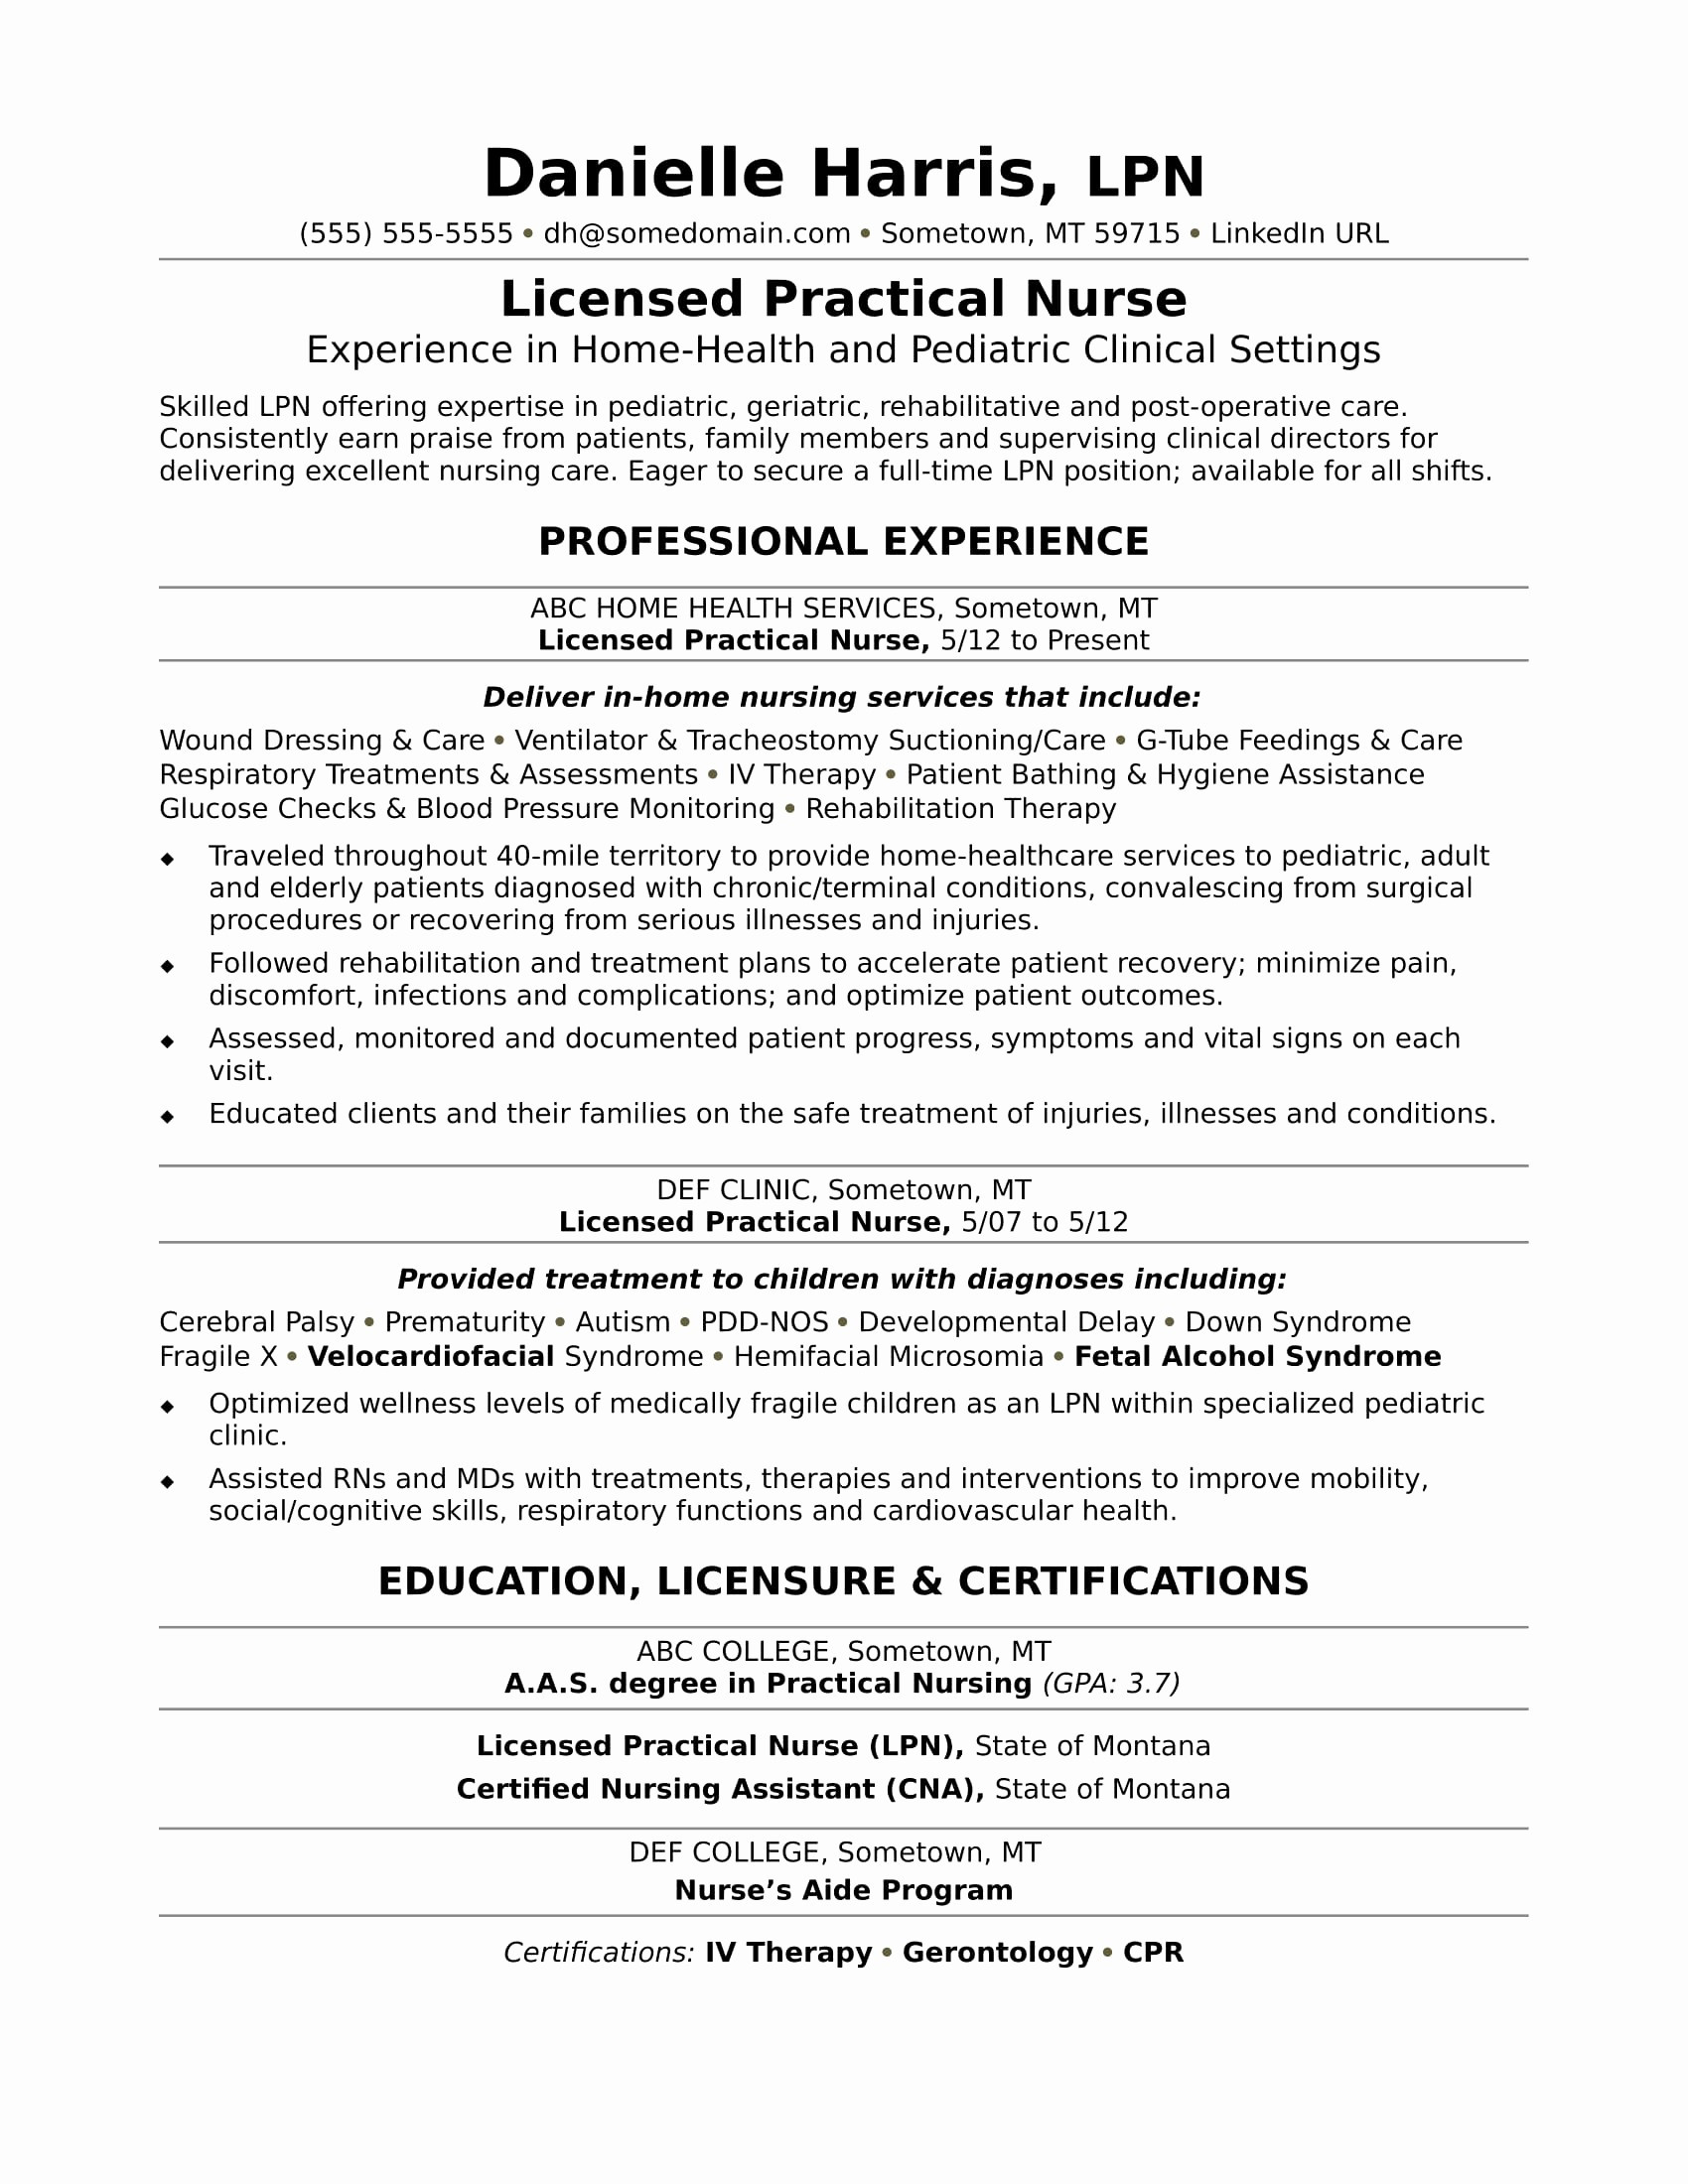 Forms for Resumes - Free Resume Luxury Resume forms Lovely Free Resume Examples Fresh